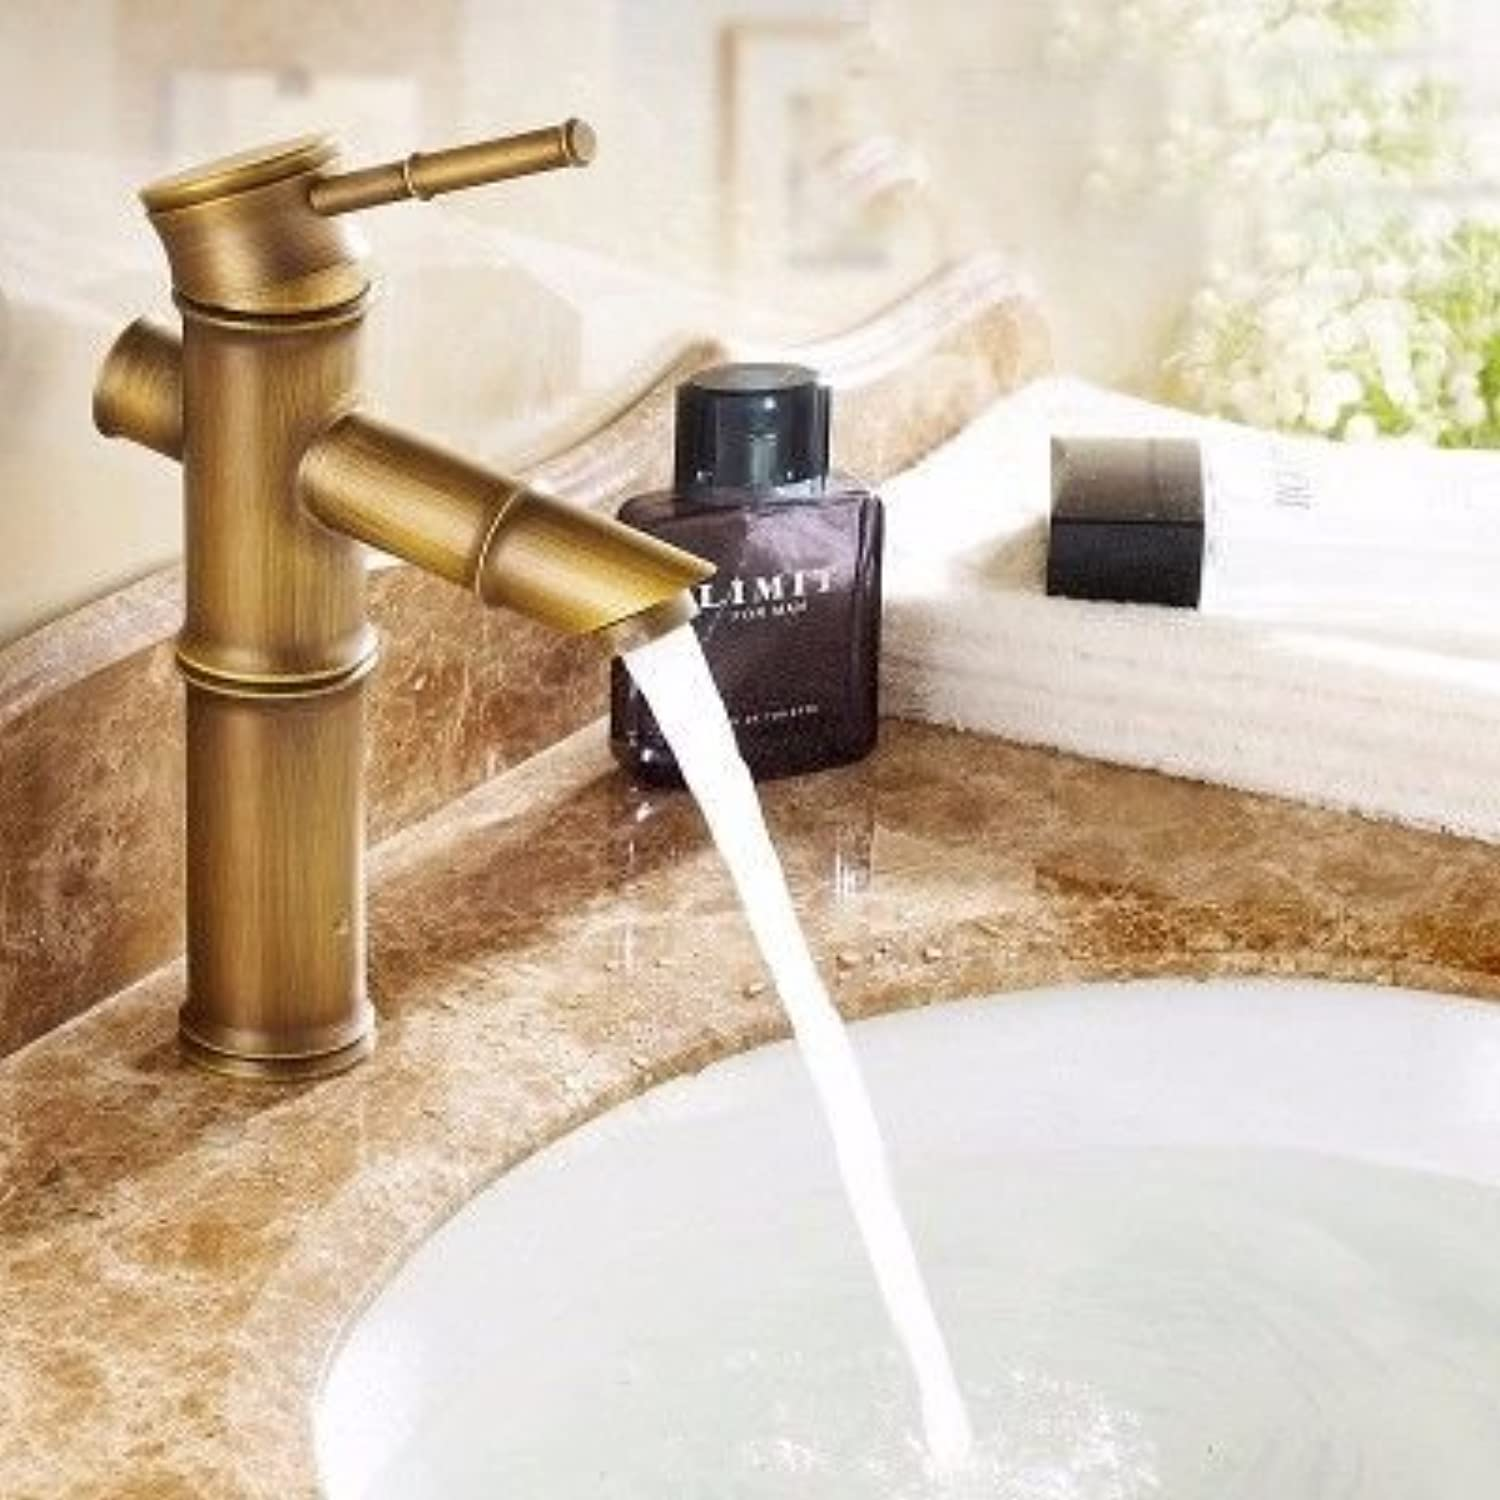 ETERNAL QUALITY Bathroom Sink Basin Tap Brass Mixer Tap Washroom Mixer Faucet Basin faucet antique bamboo wash basins and cold water slot blender xklj Kitchen Sink Taps